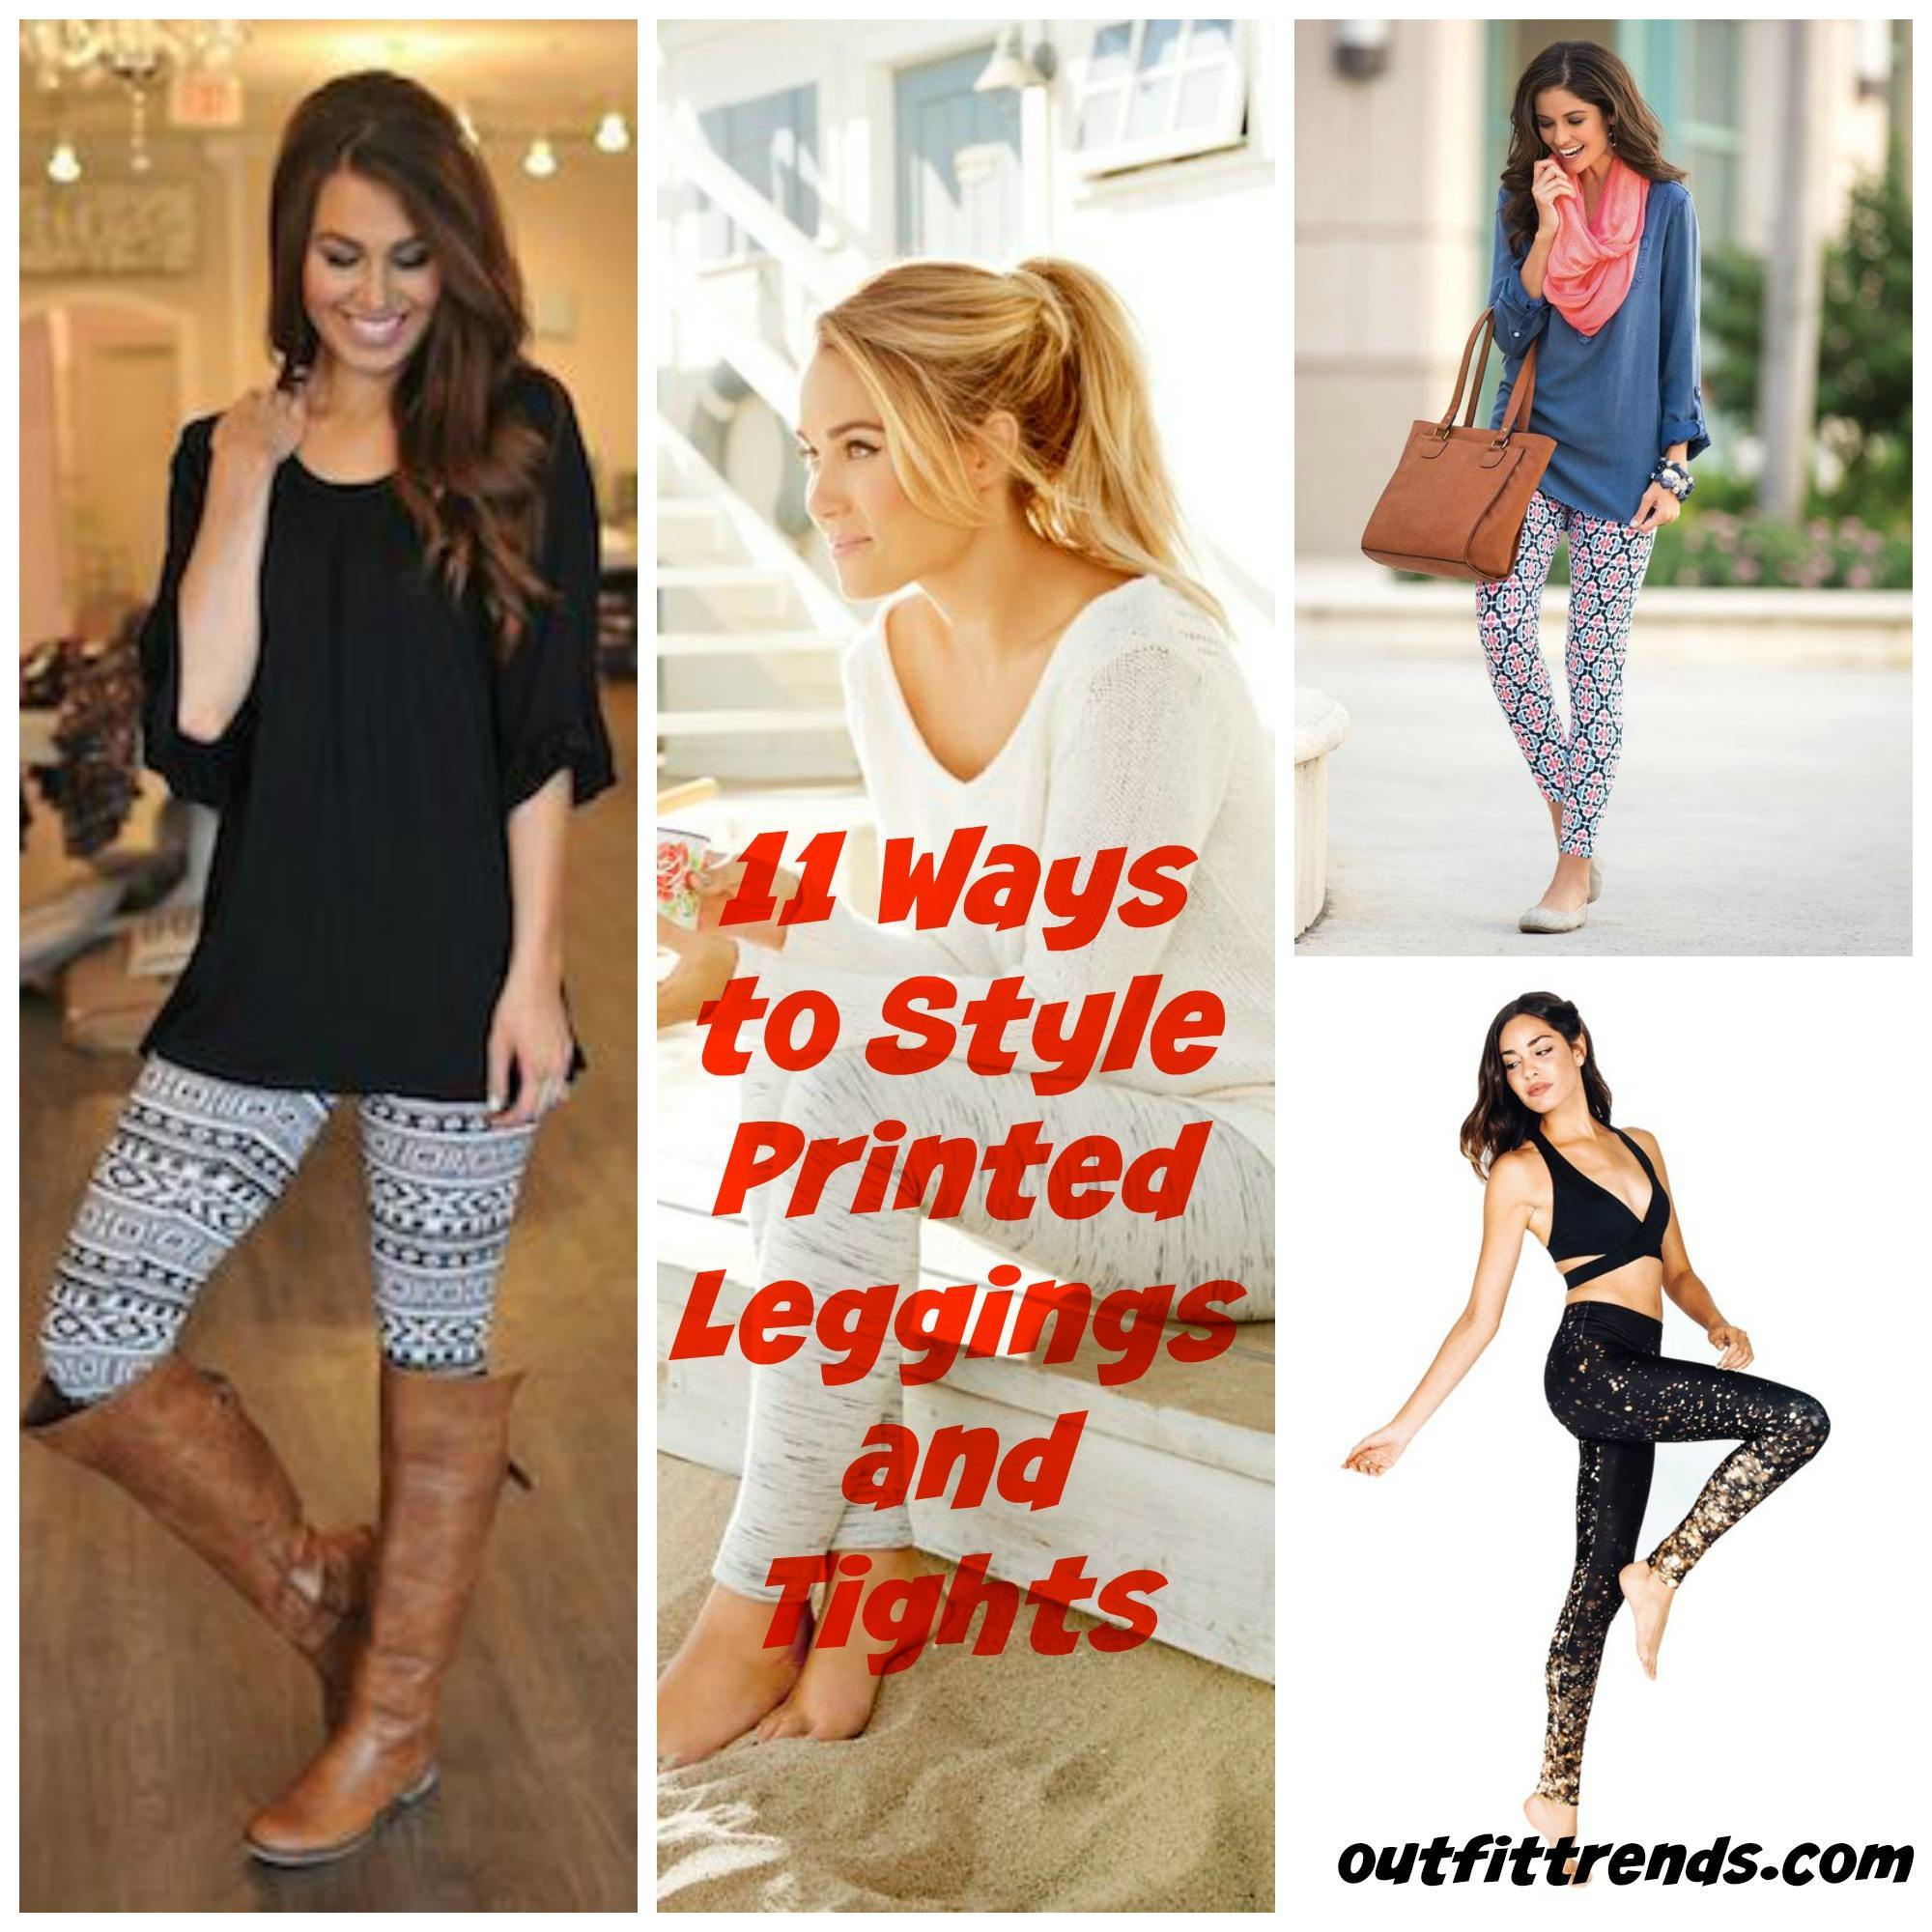 leggings tights printed outfits